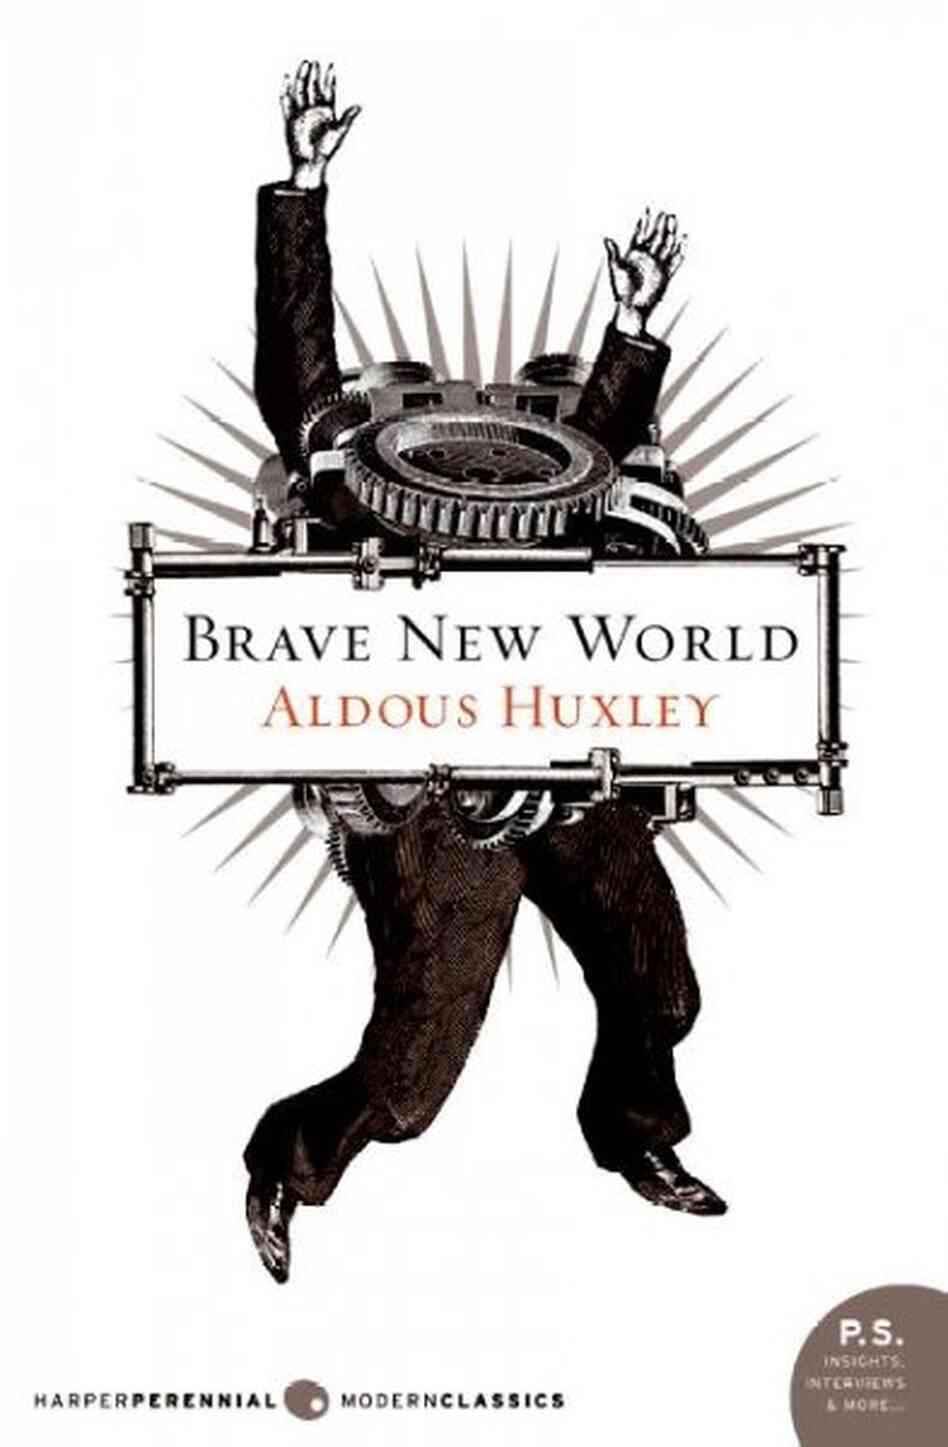 character analysis of bernard marx in aldous huxleys brave new world Brave new world [aldous huxley]  like neo from 'the matrix', one particular citizen of this society named bernard marx starts feeling that there is more to the world than would be apparent from this state of induced bliss.